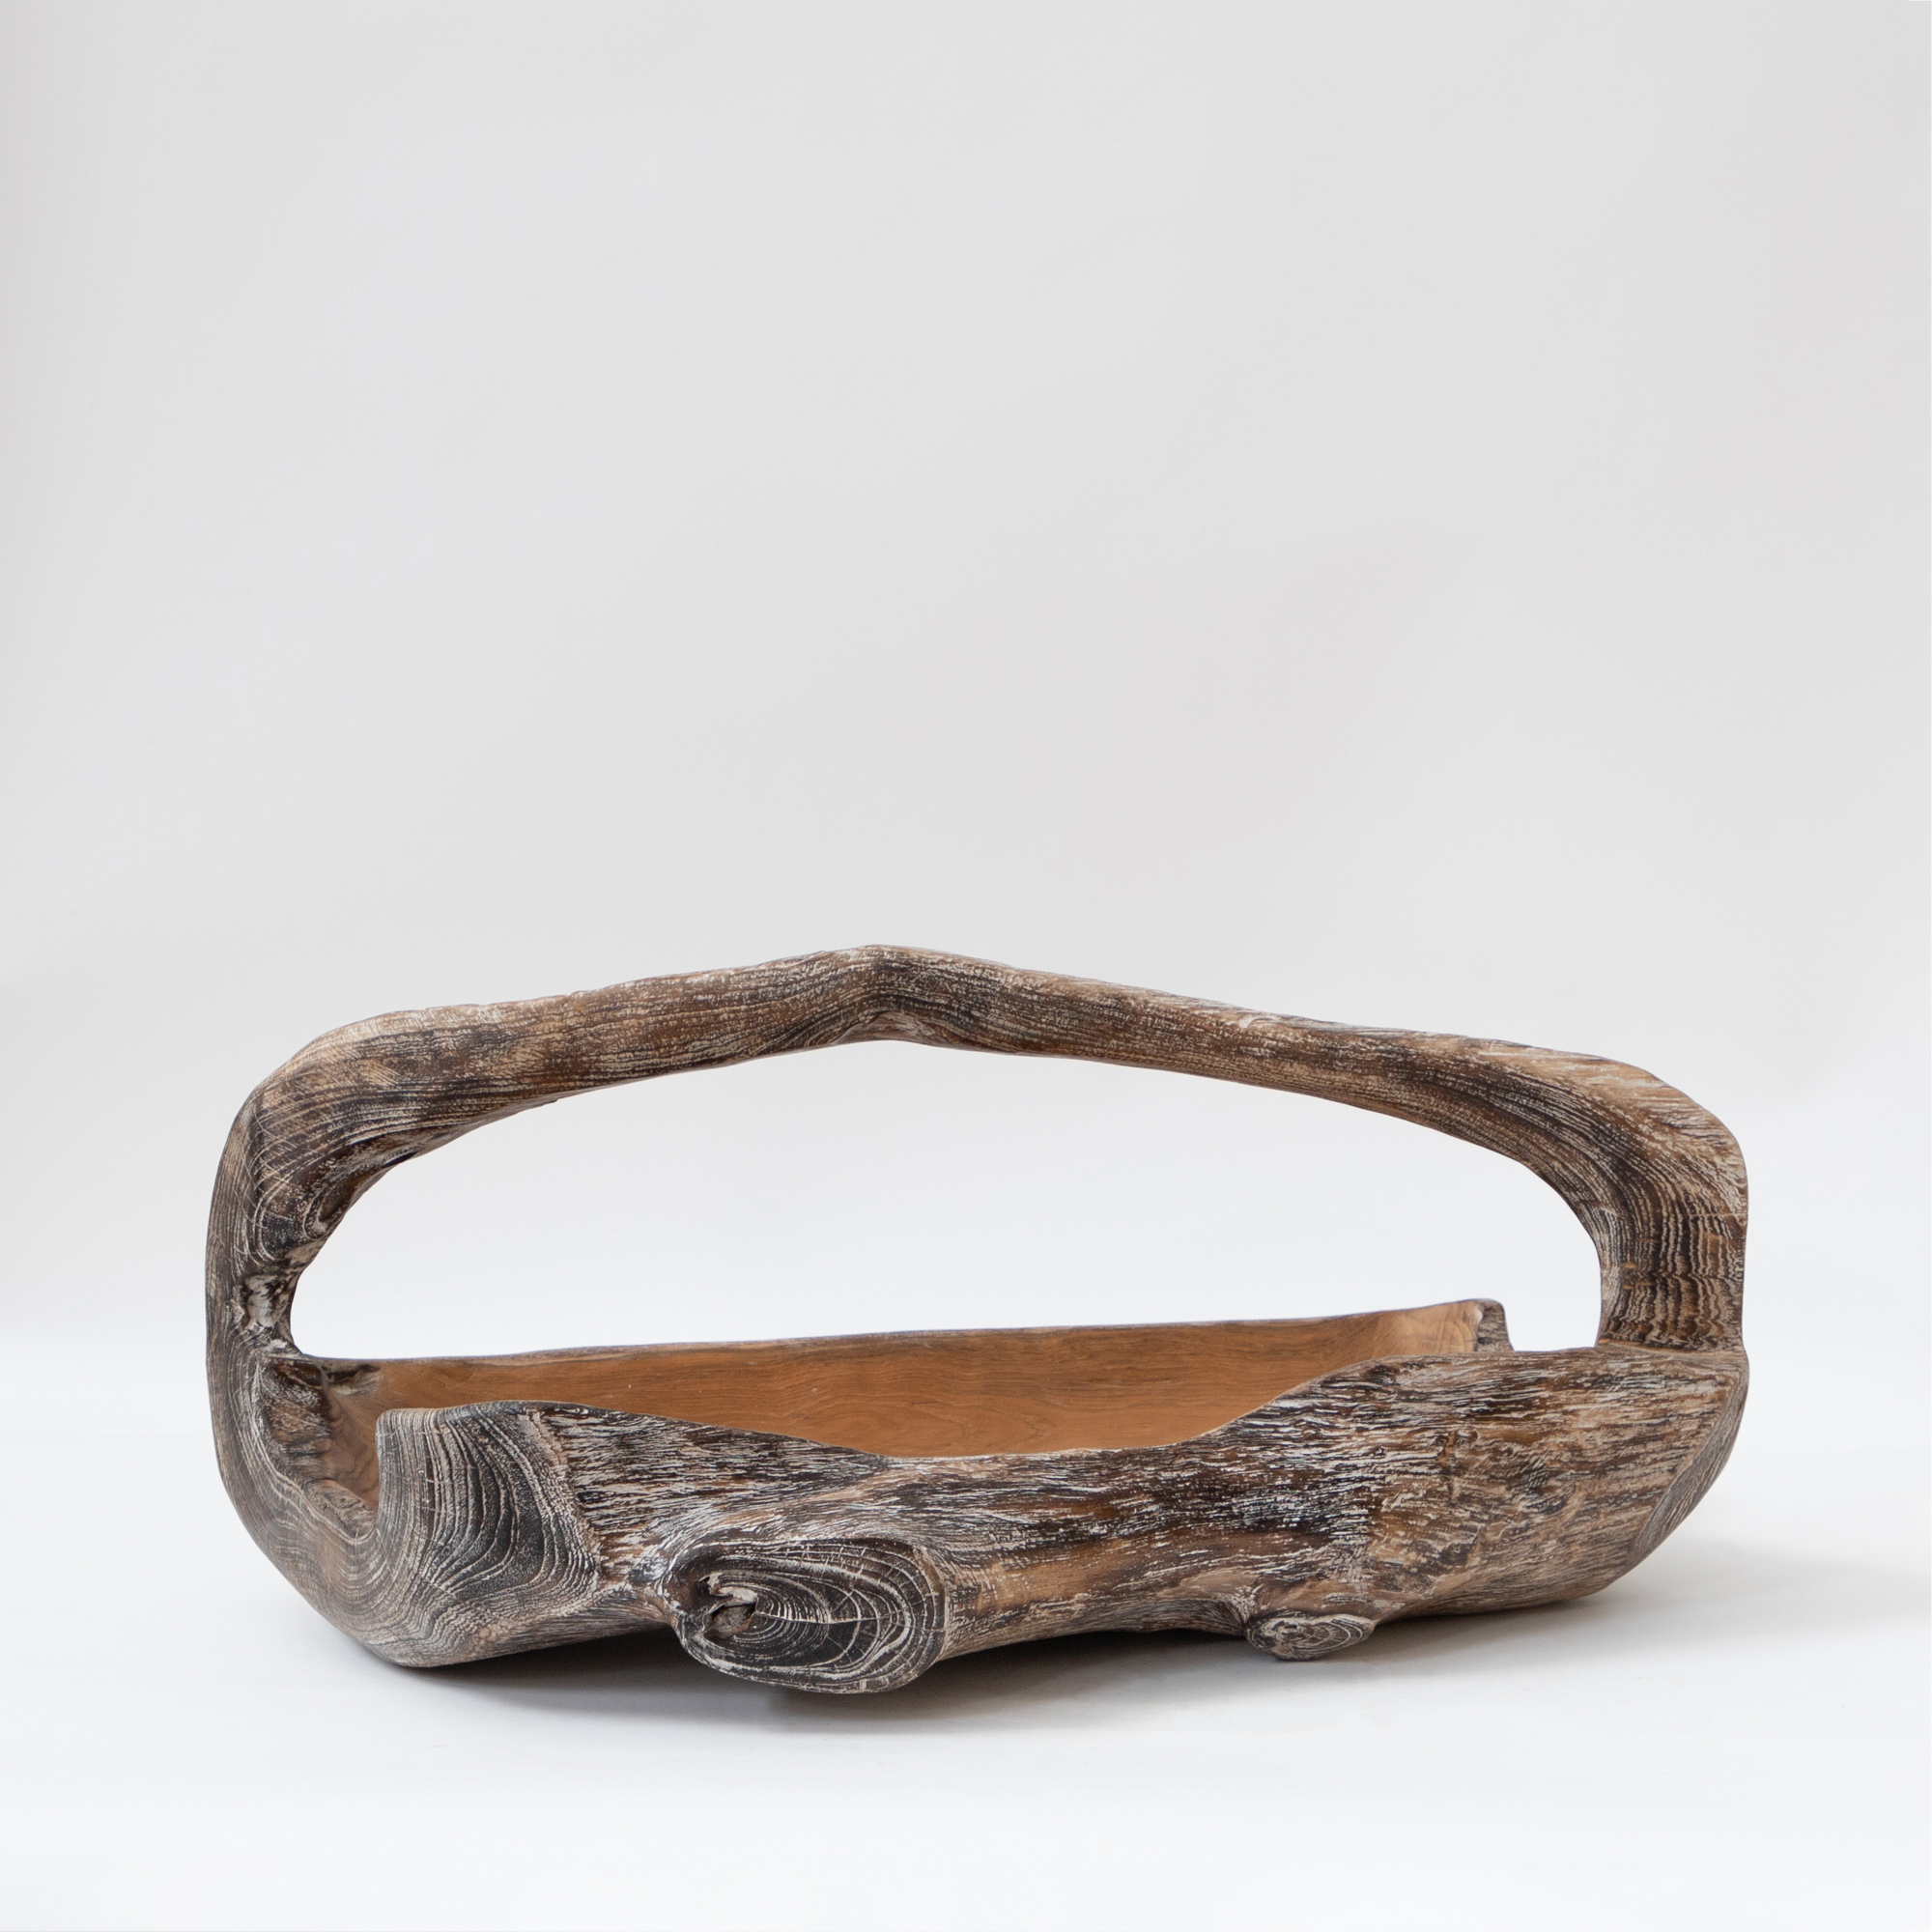 Asian Wooden Boat Decorative Object